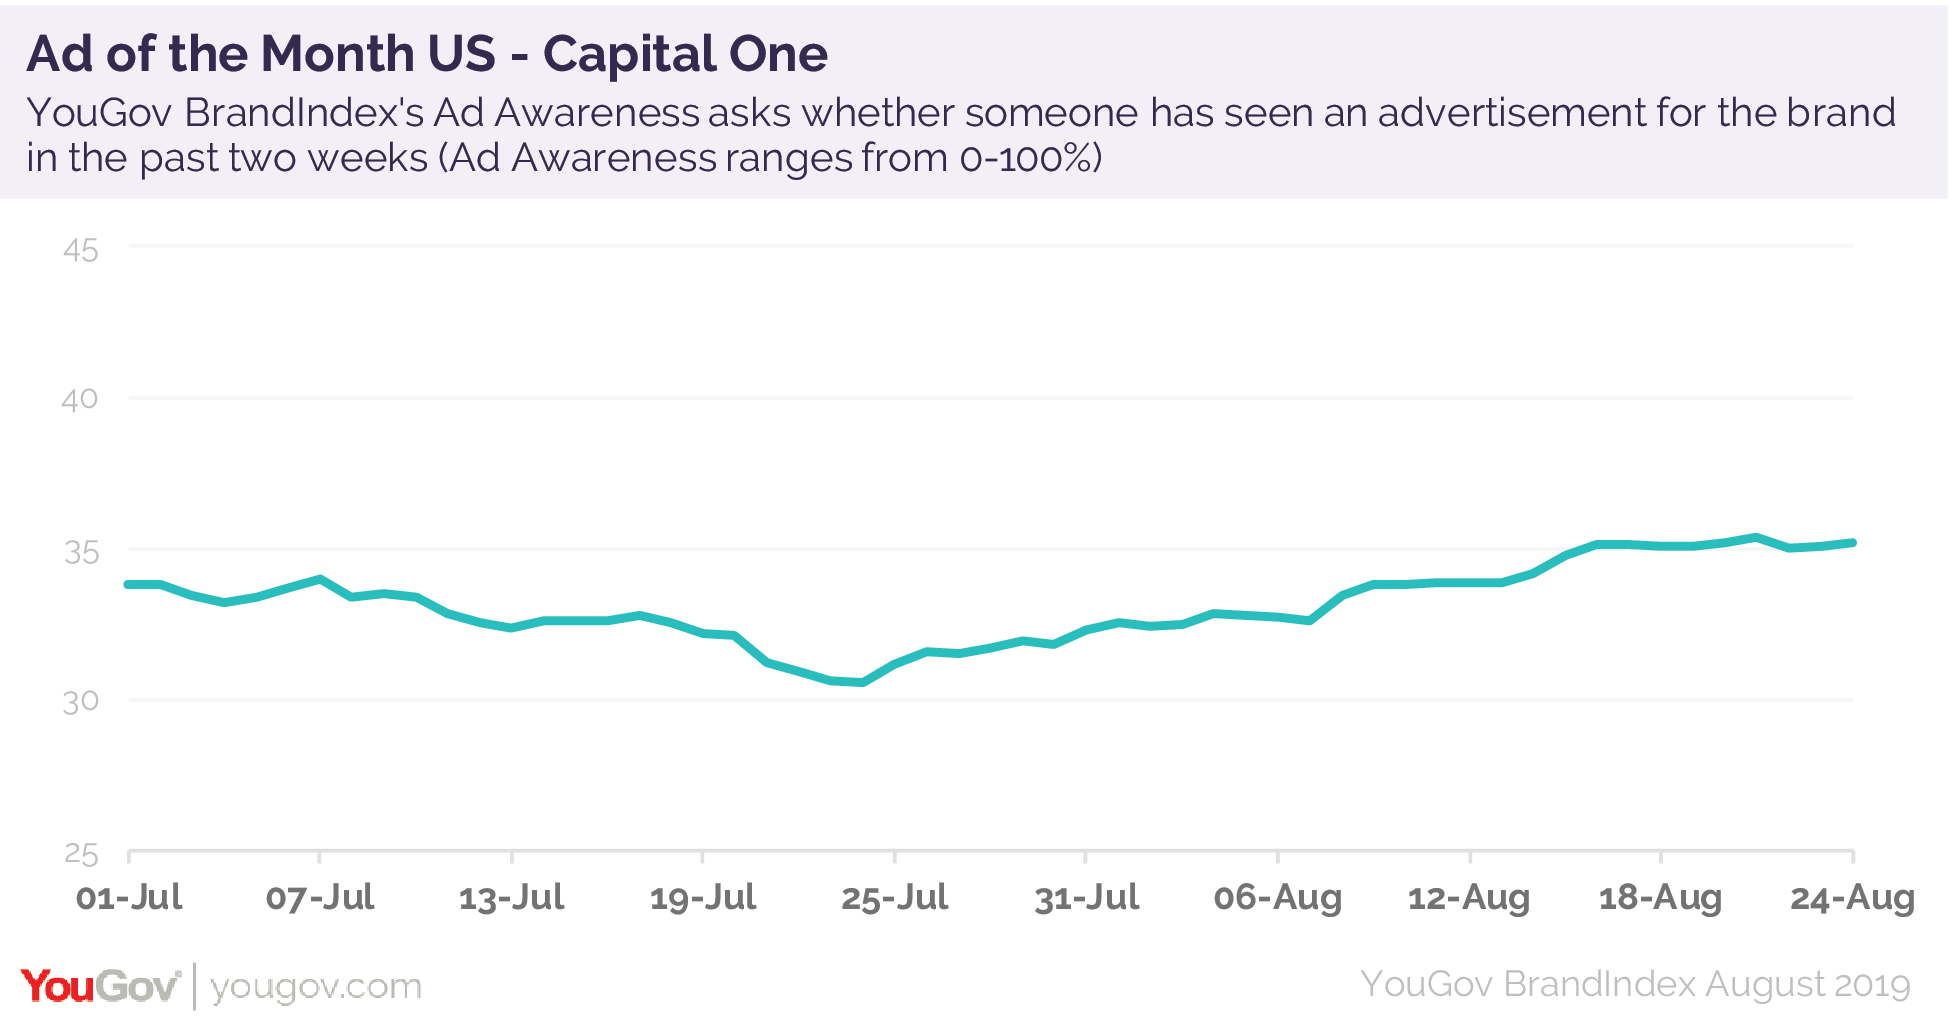 The US Ad of the Month is Capital One